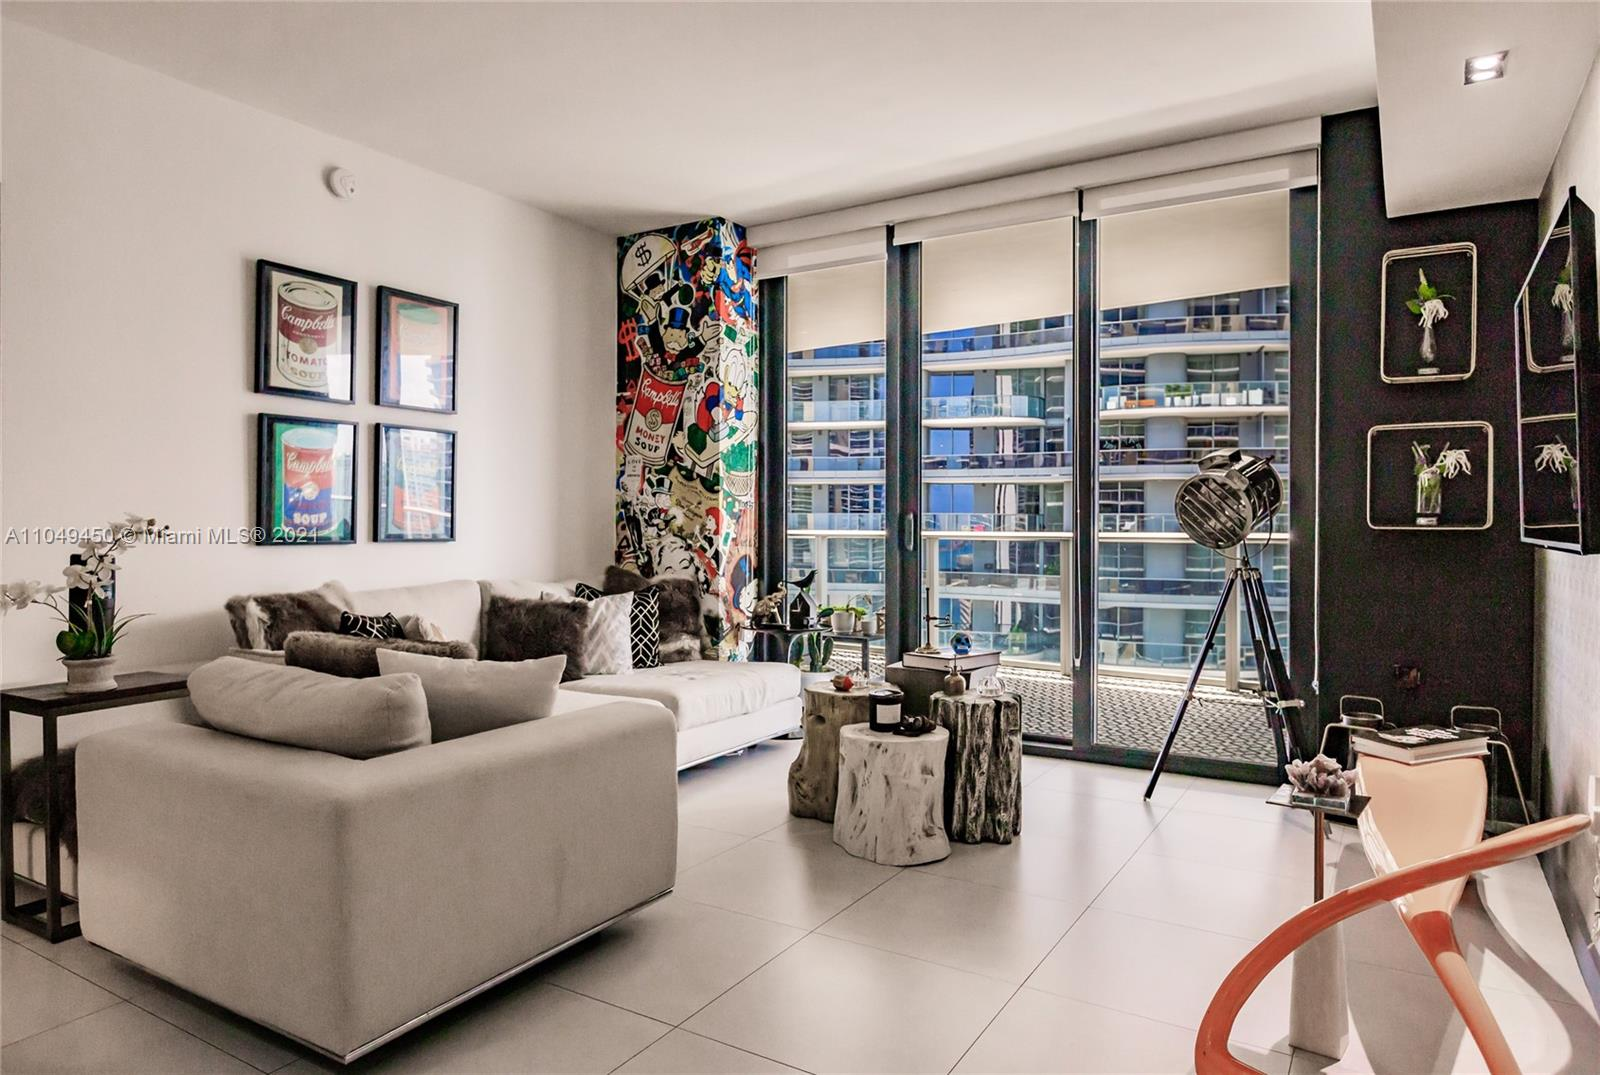 BEAUTIFUL corner unit in one of most desirable buildings in Brickell. This is one of the largest units, 3 beds (Den was converted into a bedroom with a full bathroom) and 3 baths and large balcony for entertaining. Many upgrades and renovations. Unit has two parking spaces and storage included. 1010 Brickell is well knows for its amazing amenities: Two stories offering basketball and squash courts, beautiful social room with huge terrace, fully equipped gym, arcade room with bowling, golf simulator, video games.. playgroung with climbing wall; running track, indoor heated pool, Hammam Spa with Sauna and Steam room. Magnificent pool with amazing views on the 50th floor with jacuzzi, delicious restaurant, bbq area and outdoor movie theater. And BEST location in Brickell!! Motivated Seller!!